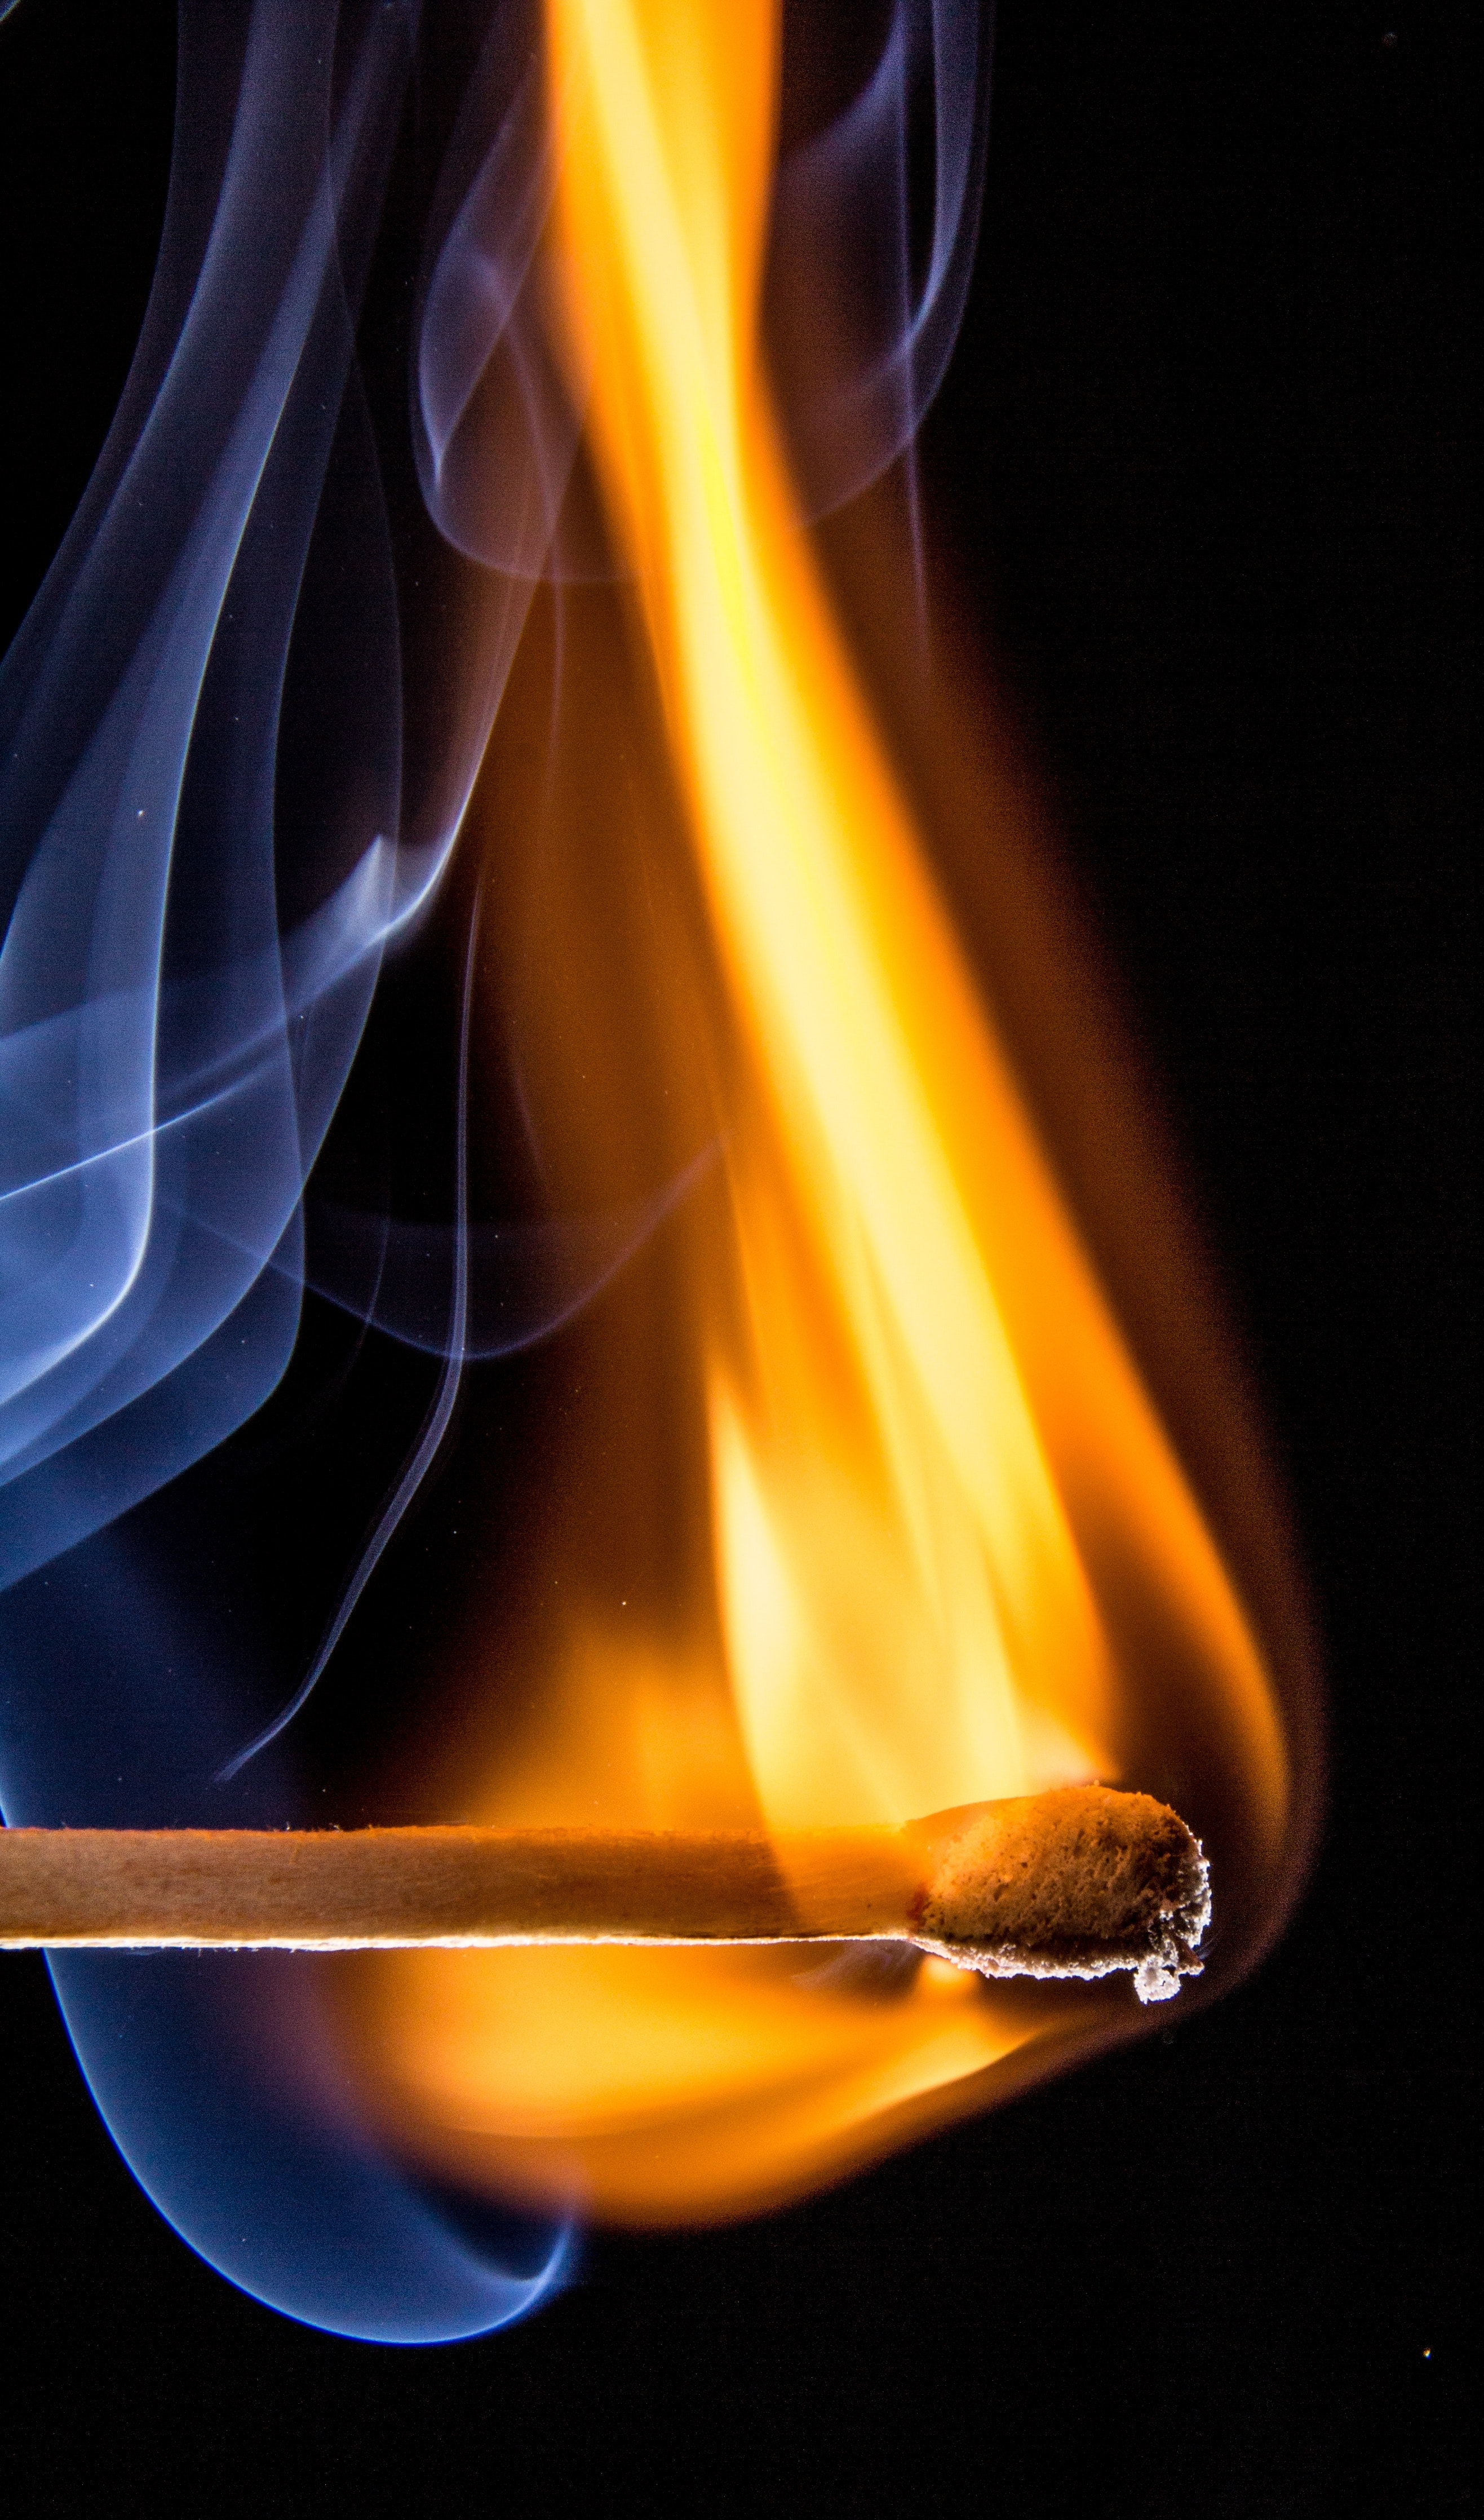 Match Stick Give Orange Fire With a White Smoe · Free ...